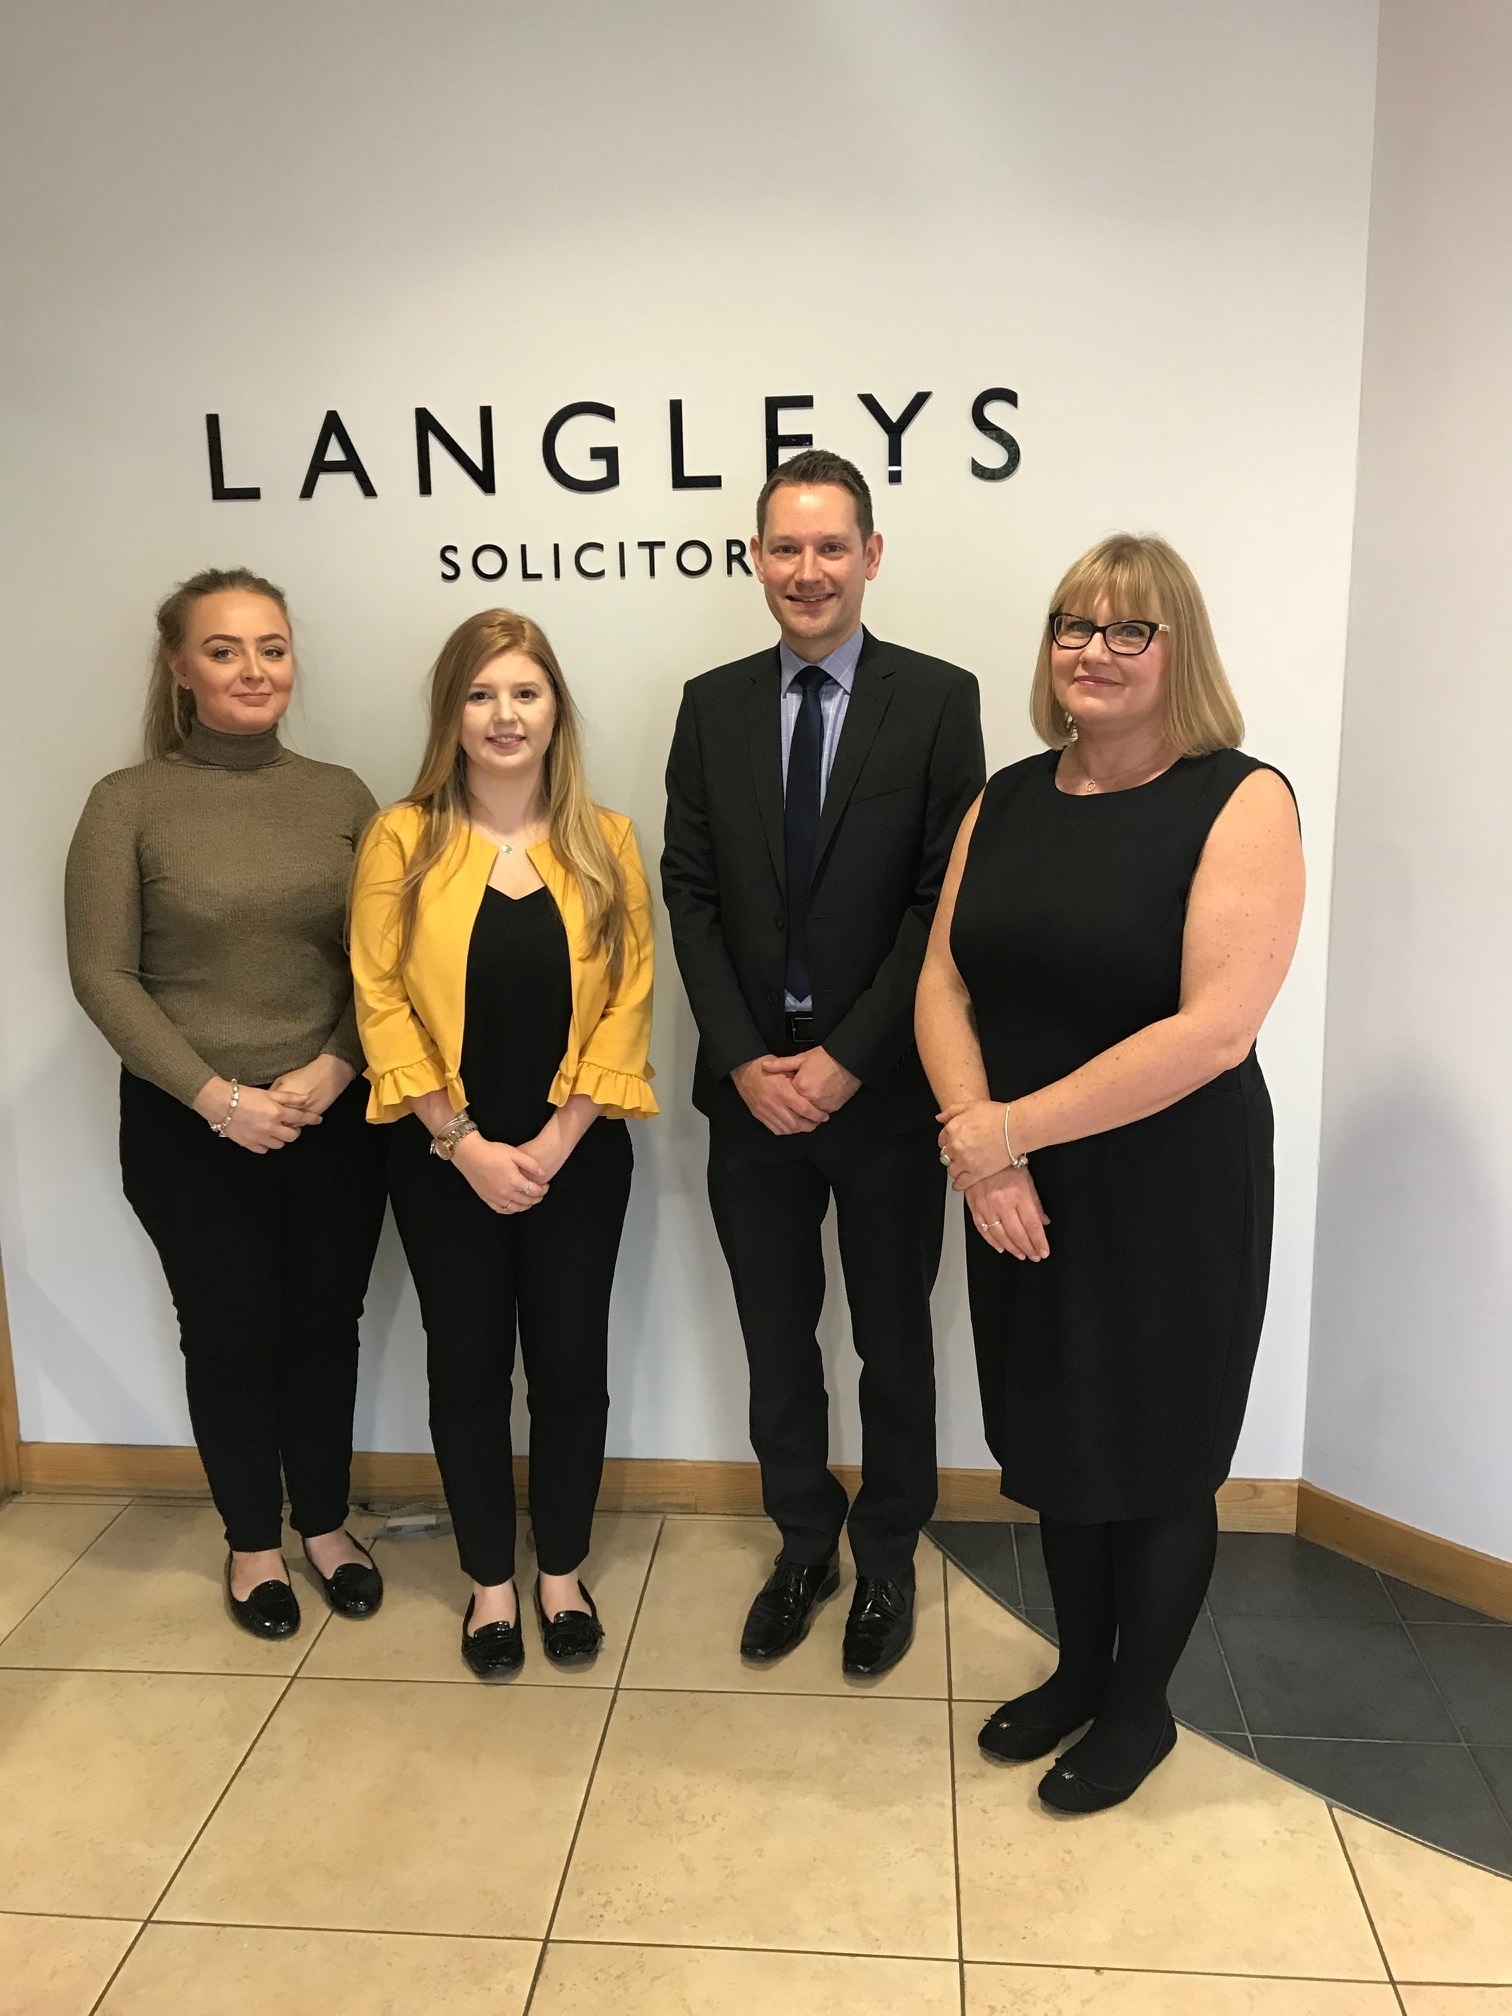 Langley's Solicitors has announced the appointment of chartered legal executive, Sarah Merrikin (right), to its medical negligence team (with, l-r, Layah Sampson, Georgina Ravencroft and partner Andrew Cragg)